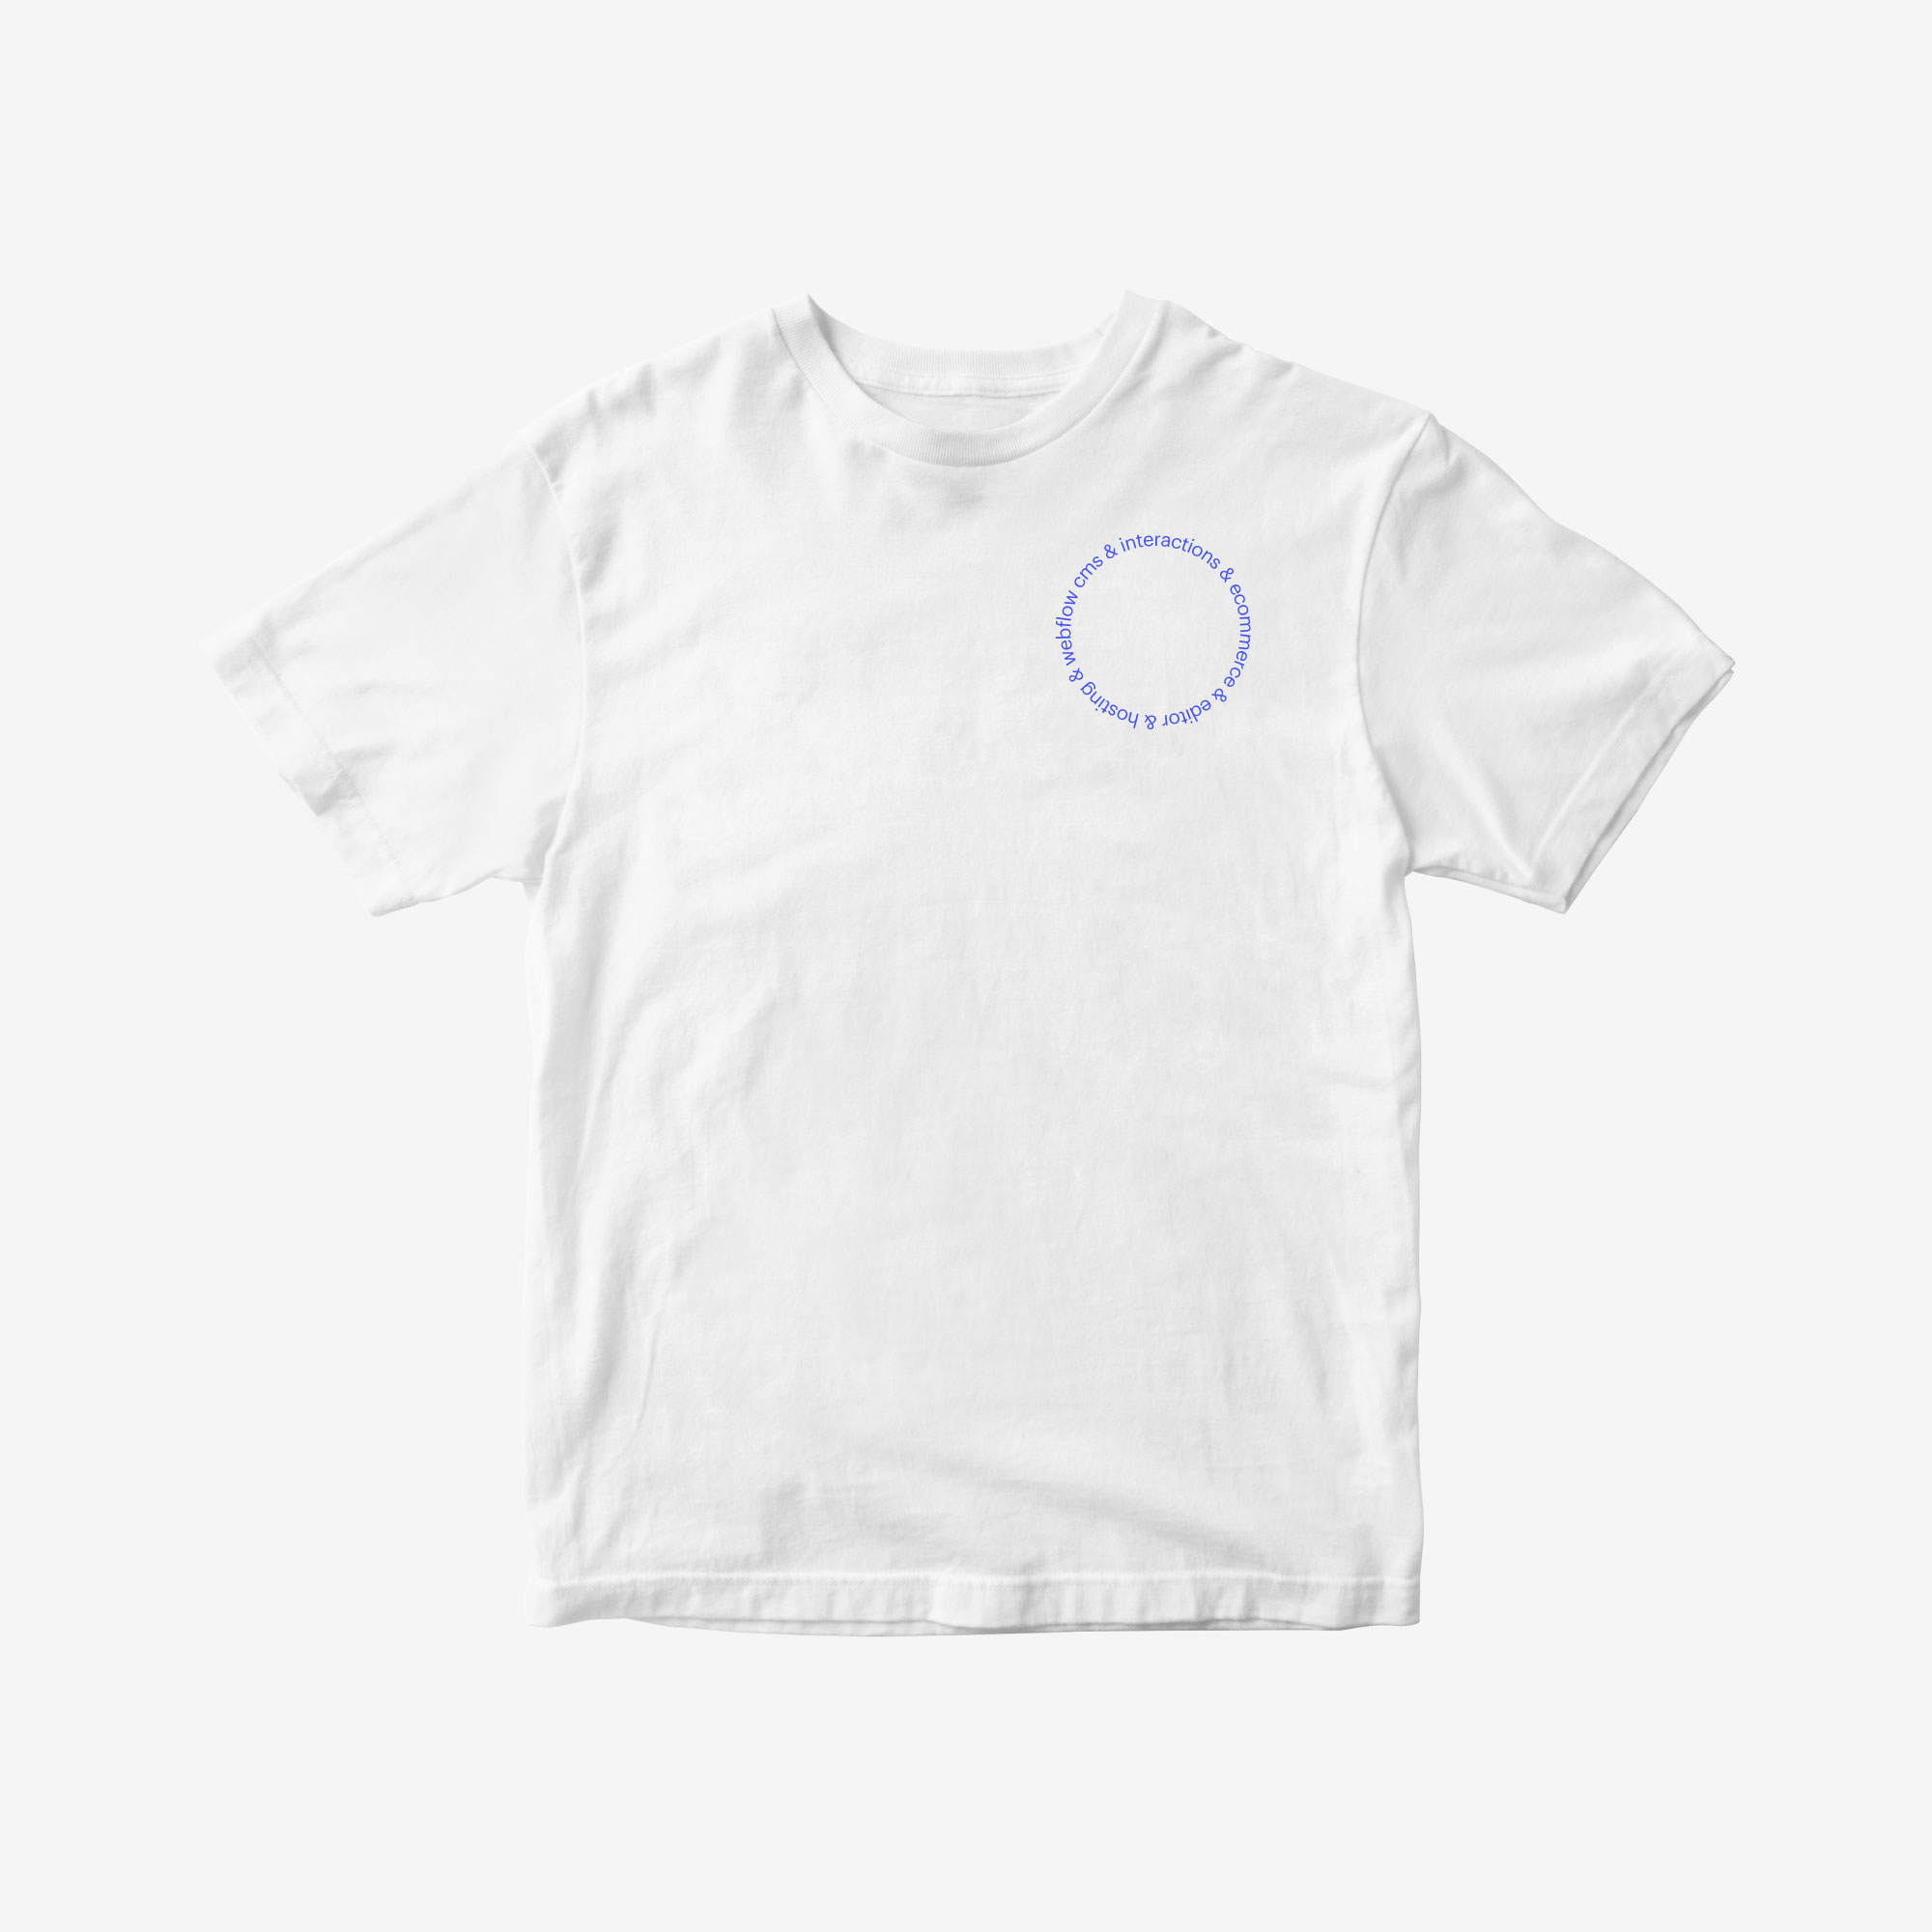 """A t-shirt with text in a circle design saying """"webflow cms & interactions & ecommerce & editor & hosting"""" in the upper right corner."""